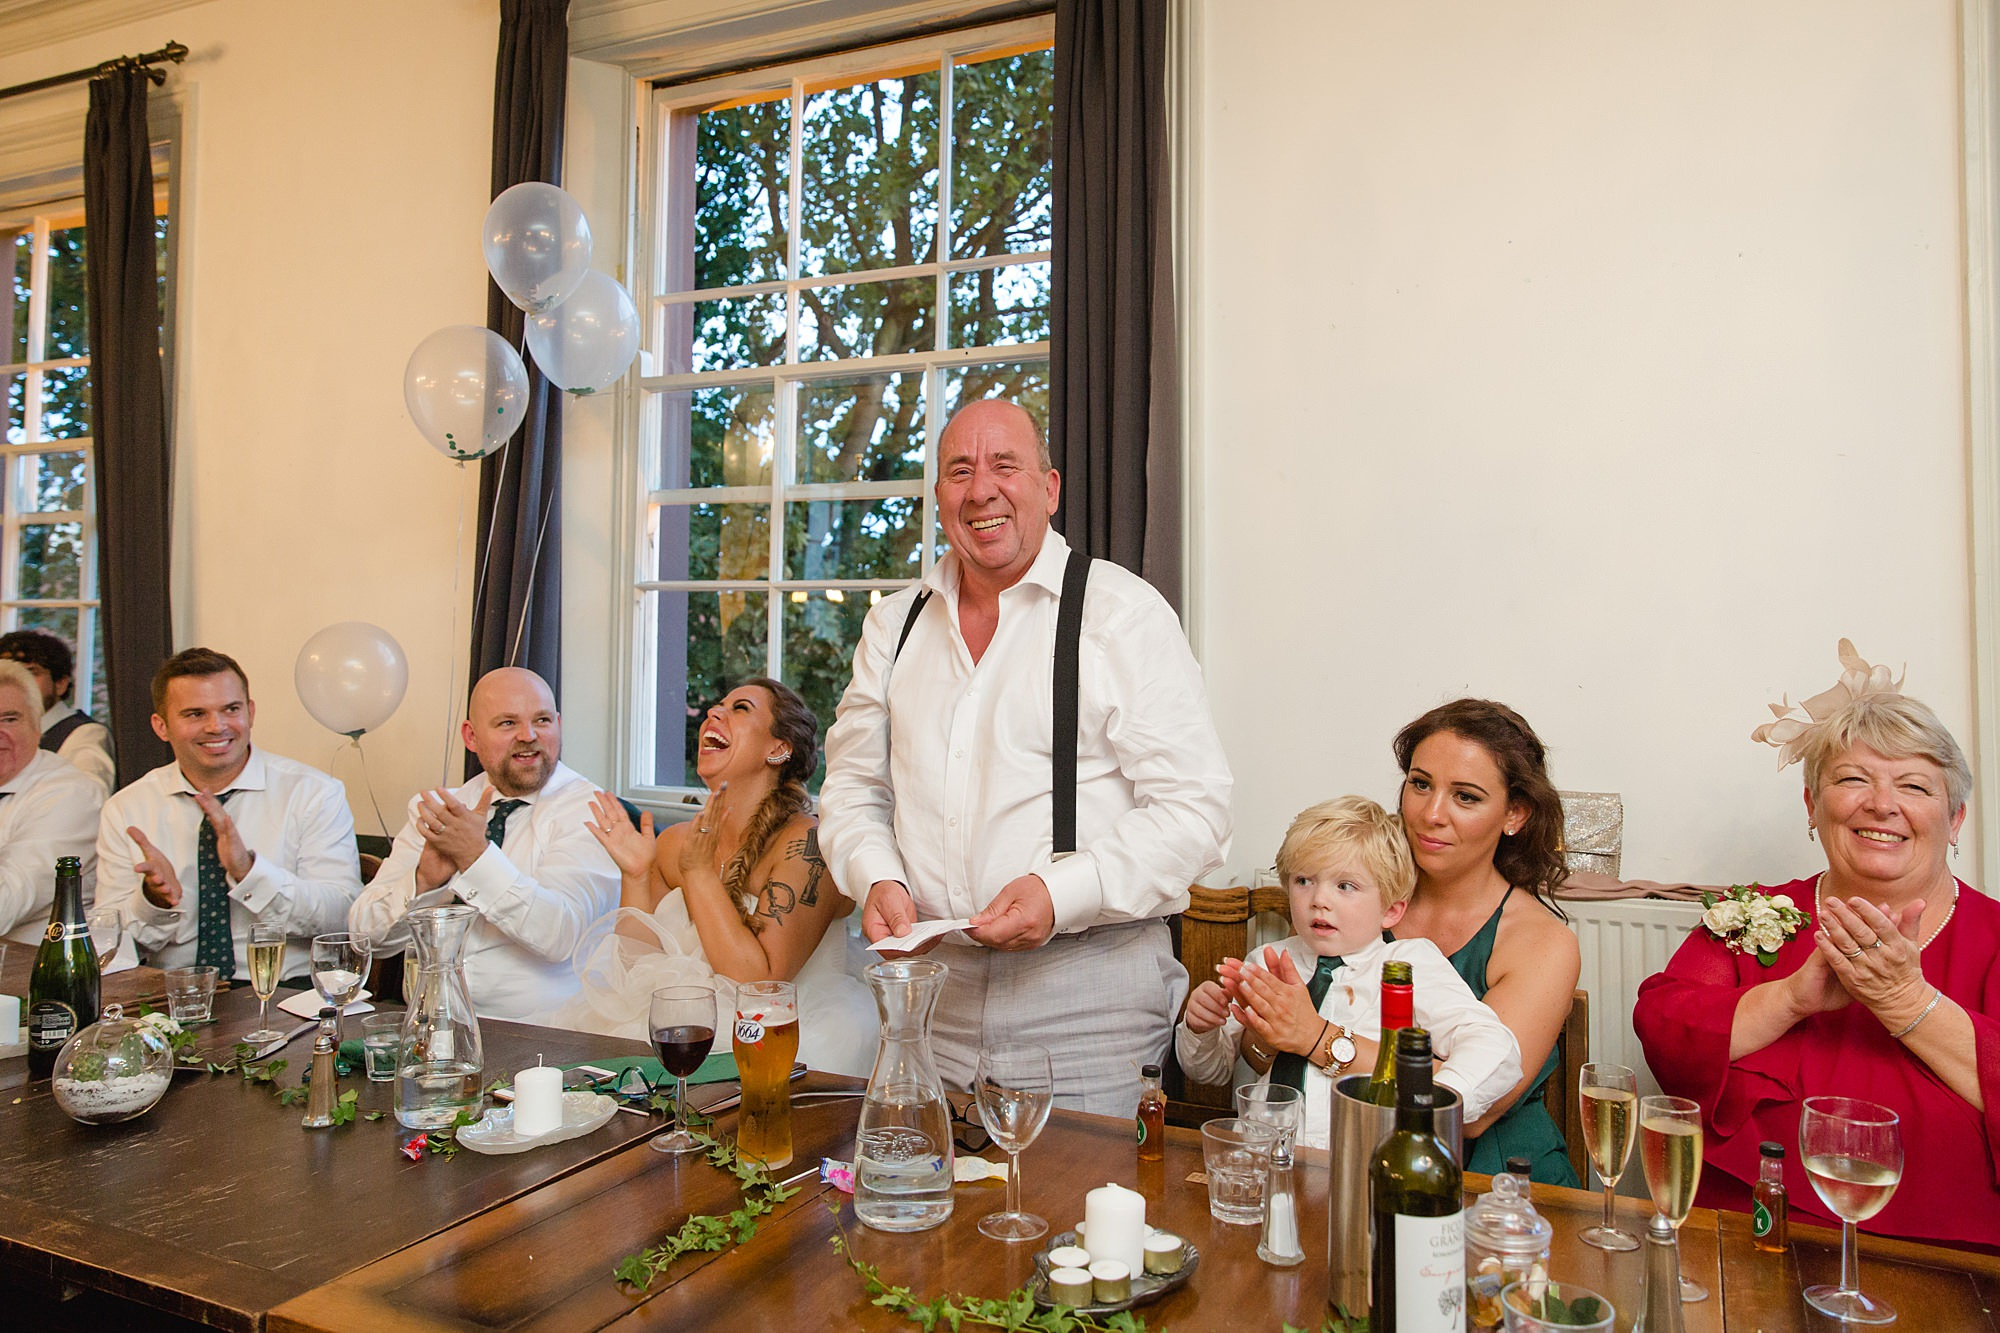 Prince albert camden wedding father of bride speech